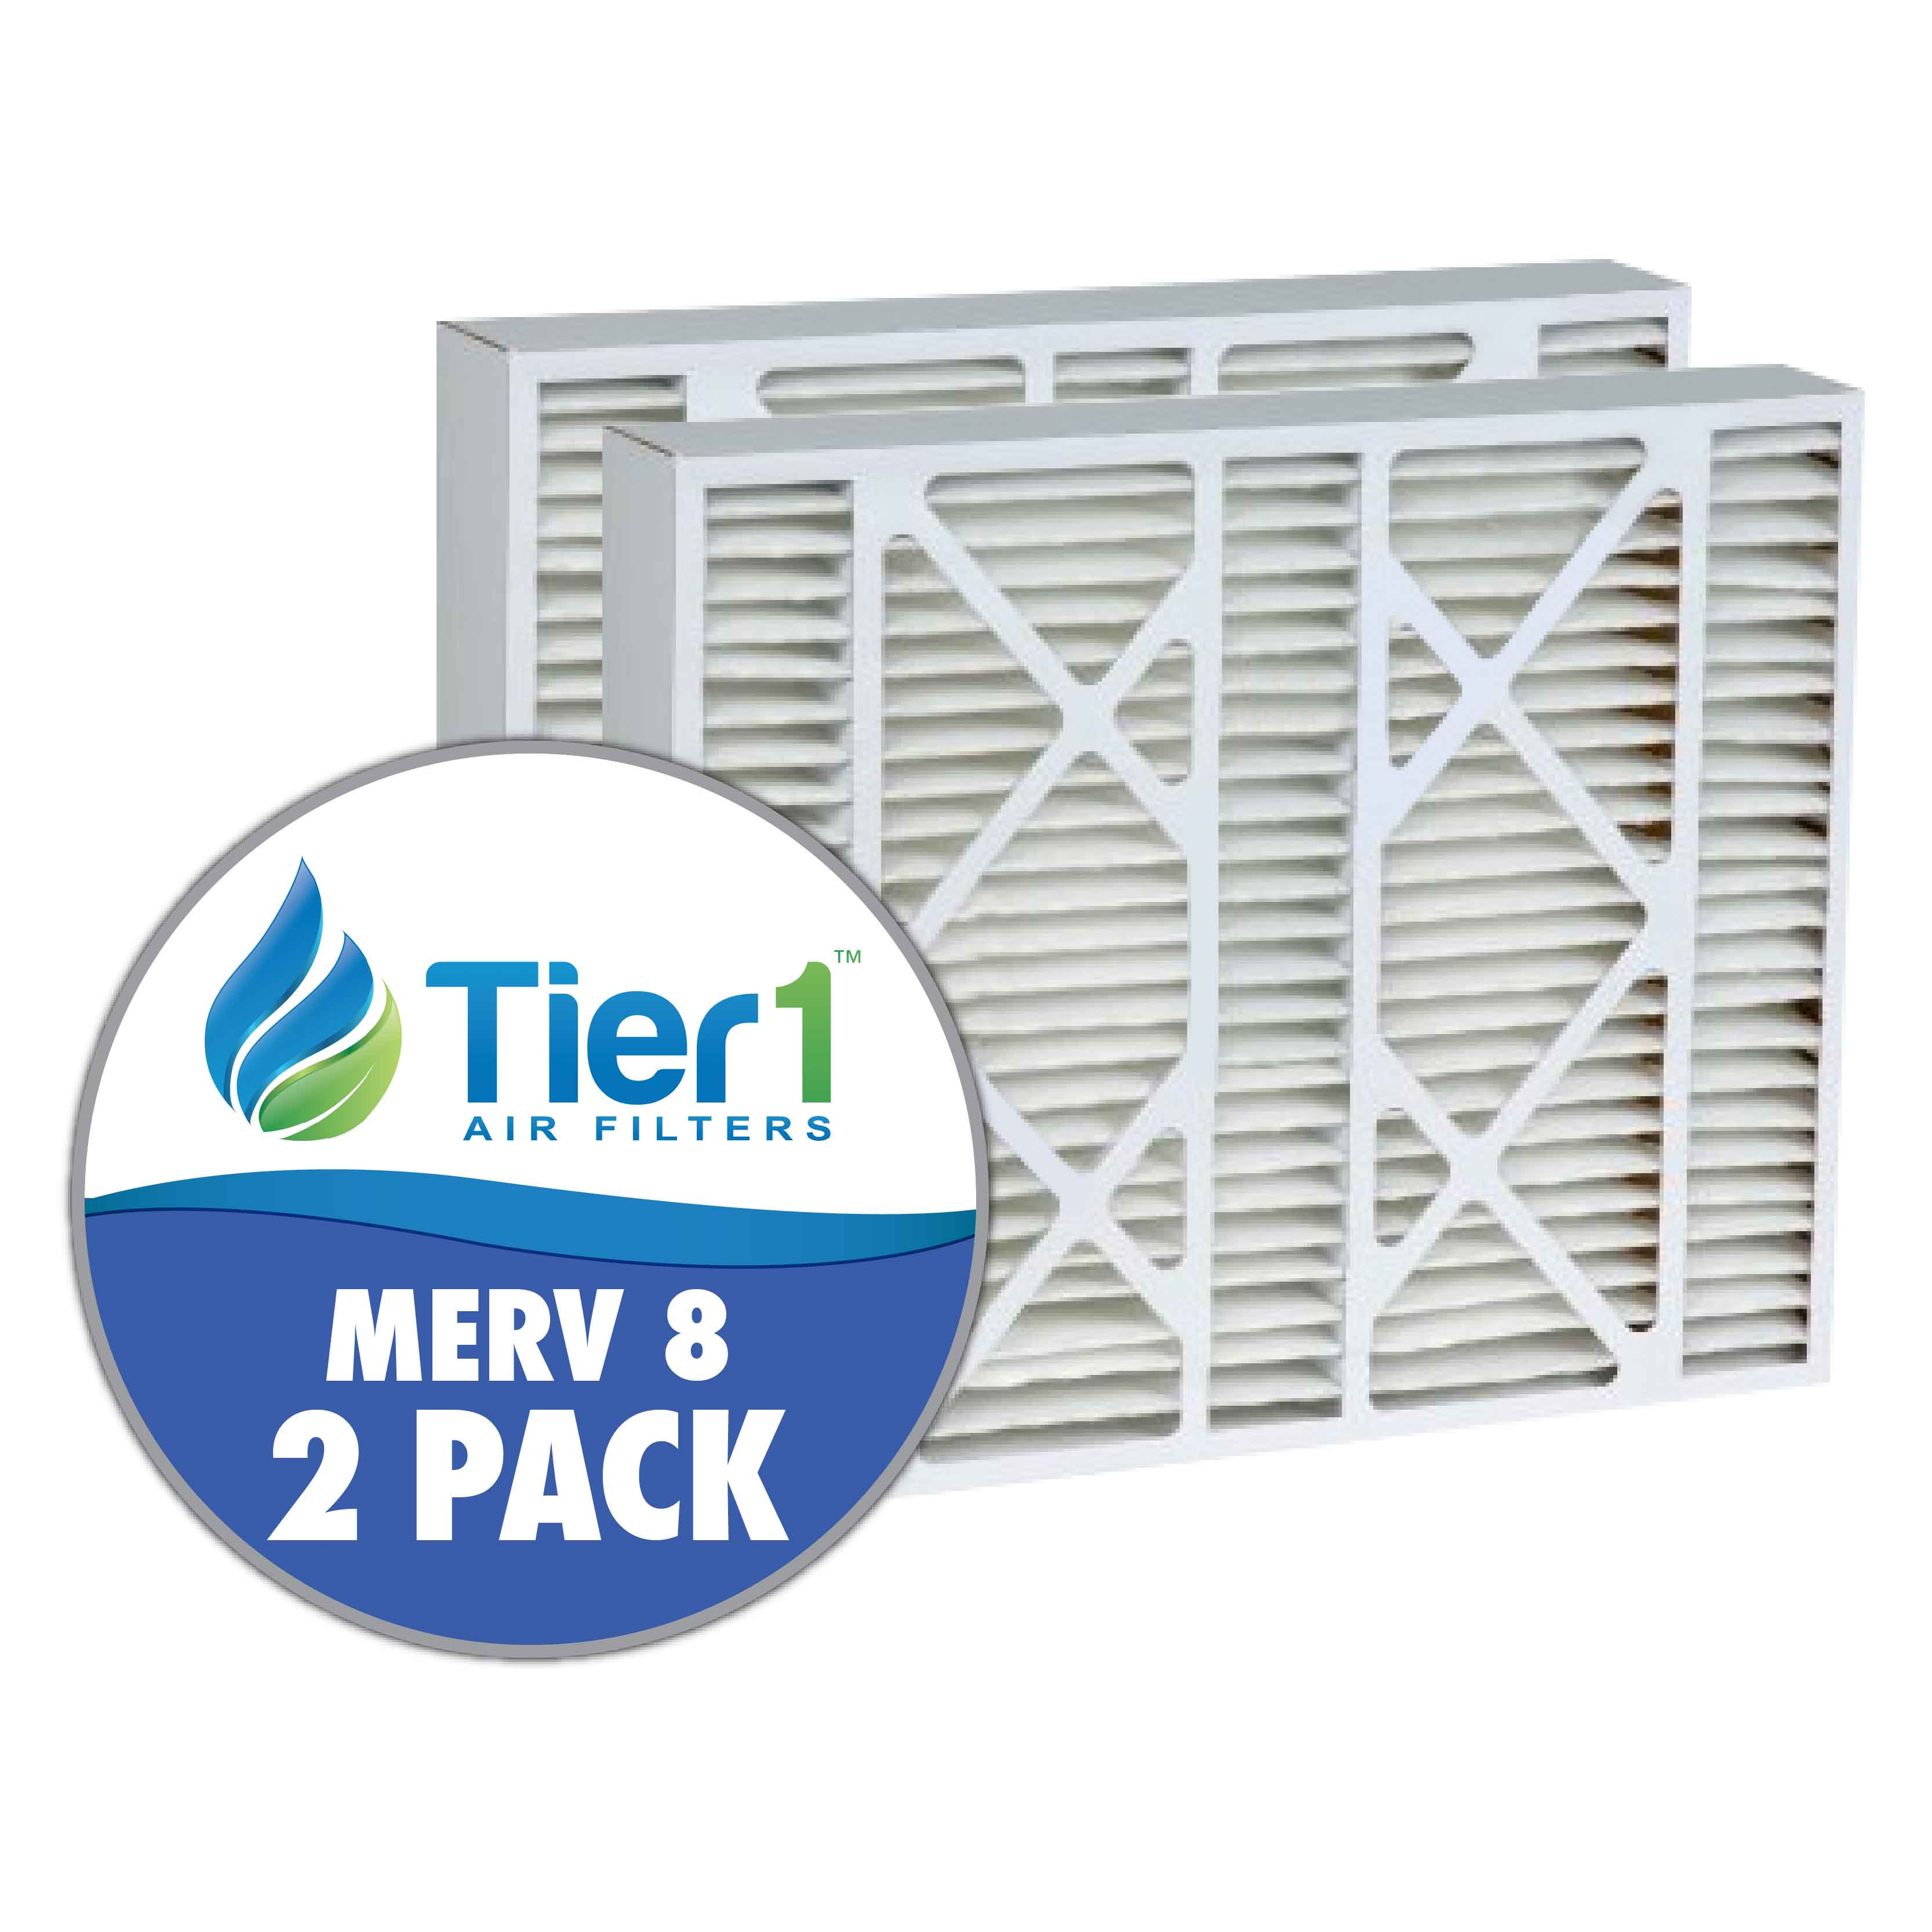 Tier1 brand replacement for White-Rodgers F825-0586 & FR1600-100 - 20 x 21 x 5 - MERV 8 (2-Pack) TIER1-DPFI20X21X5